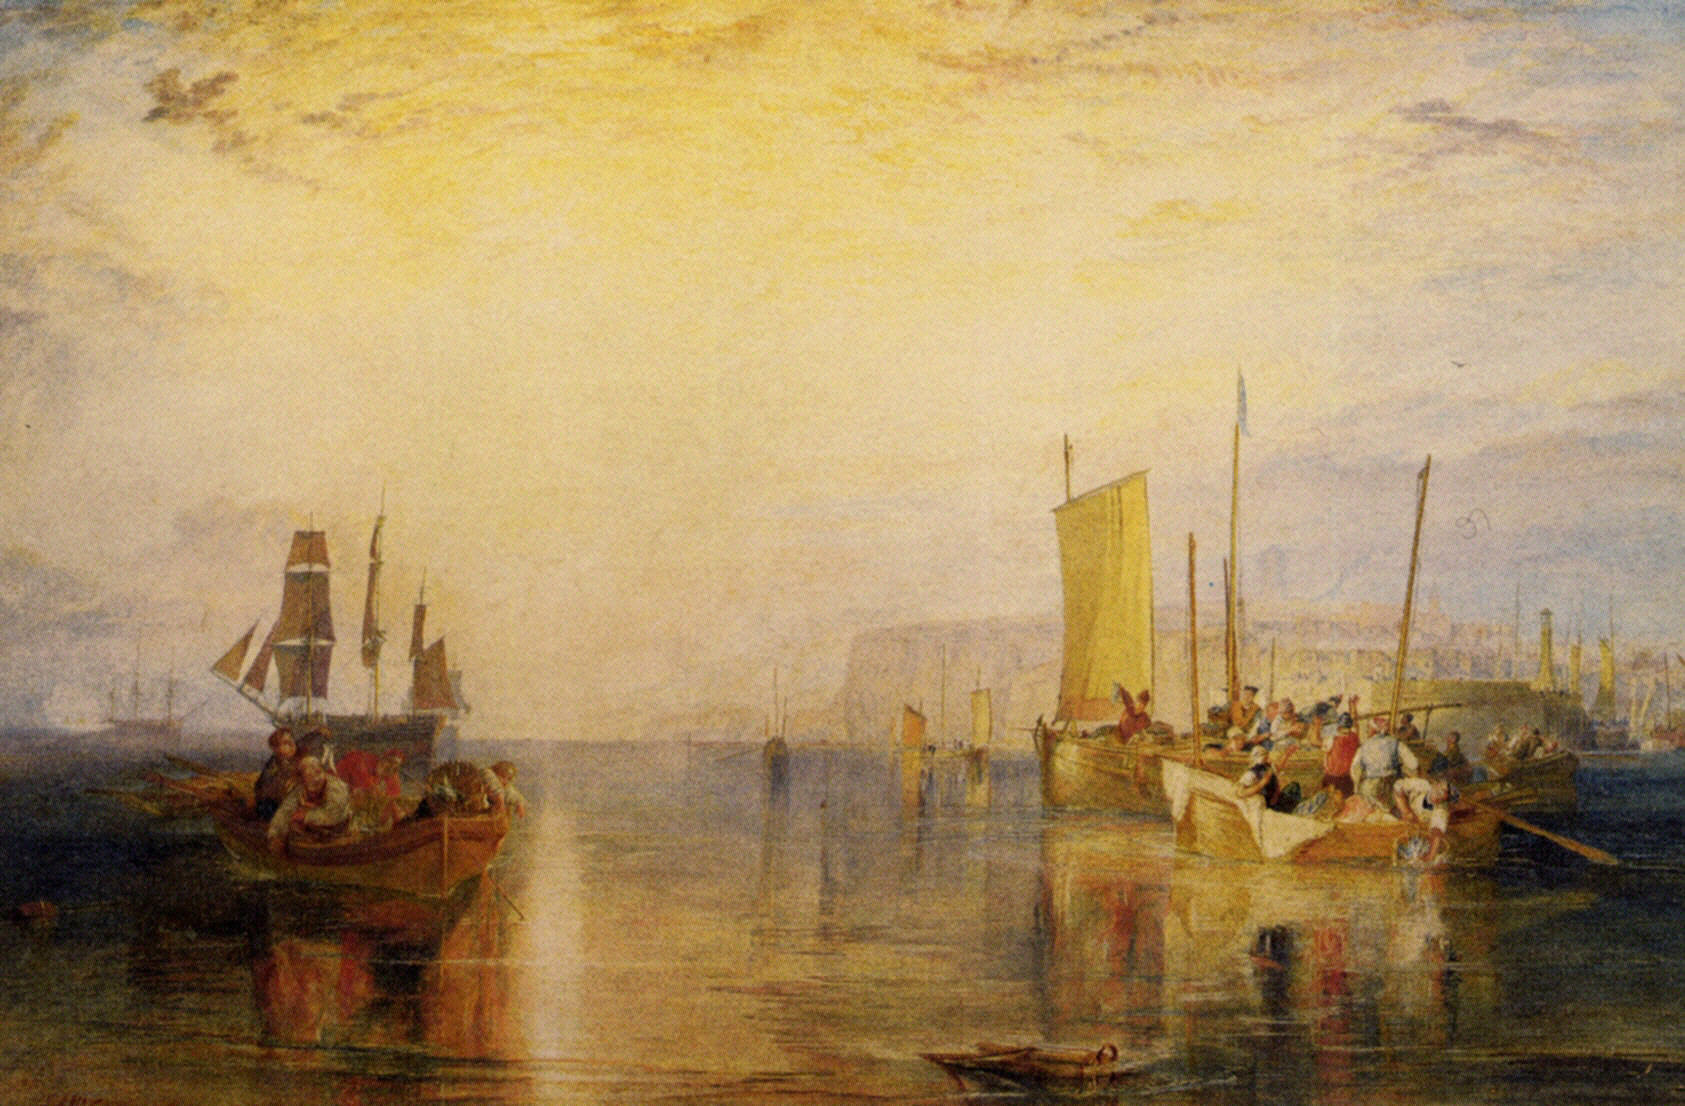 Margate from the Sea, Whiting Fishing 1822